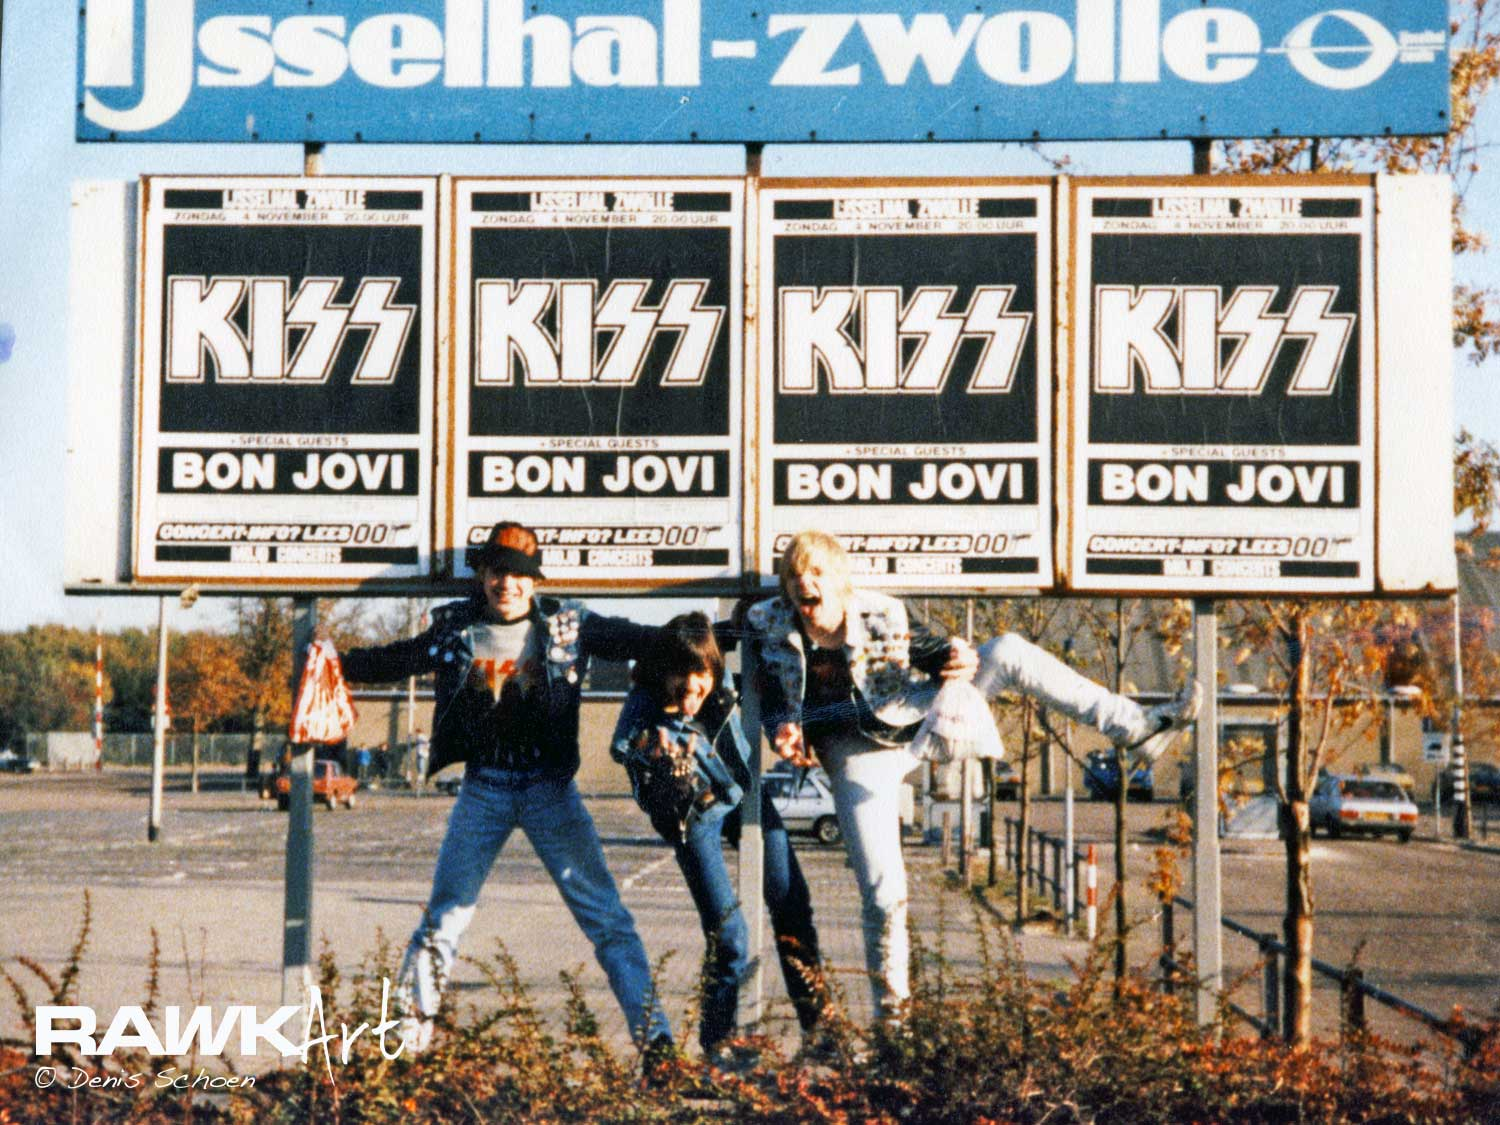 Me and my friends posing for the IJsselhallen, Zwolle, Netherlands 1984, Animalize